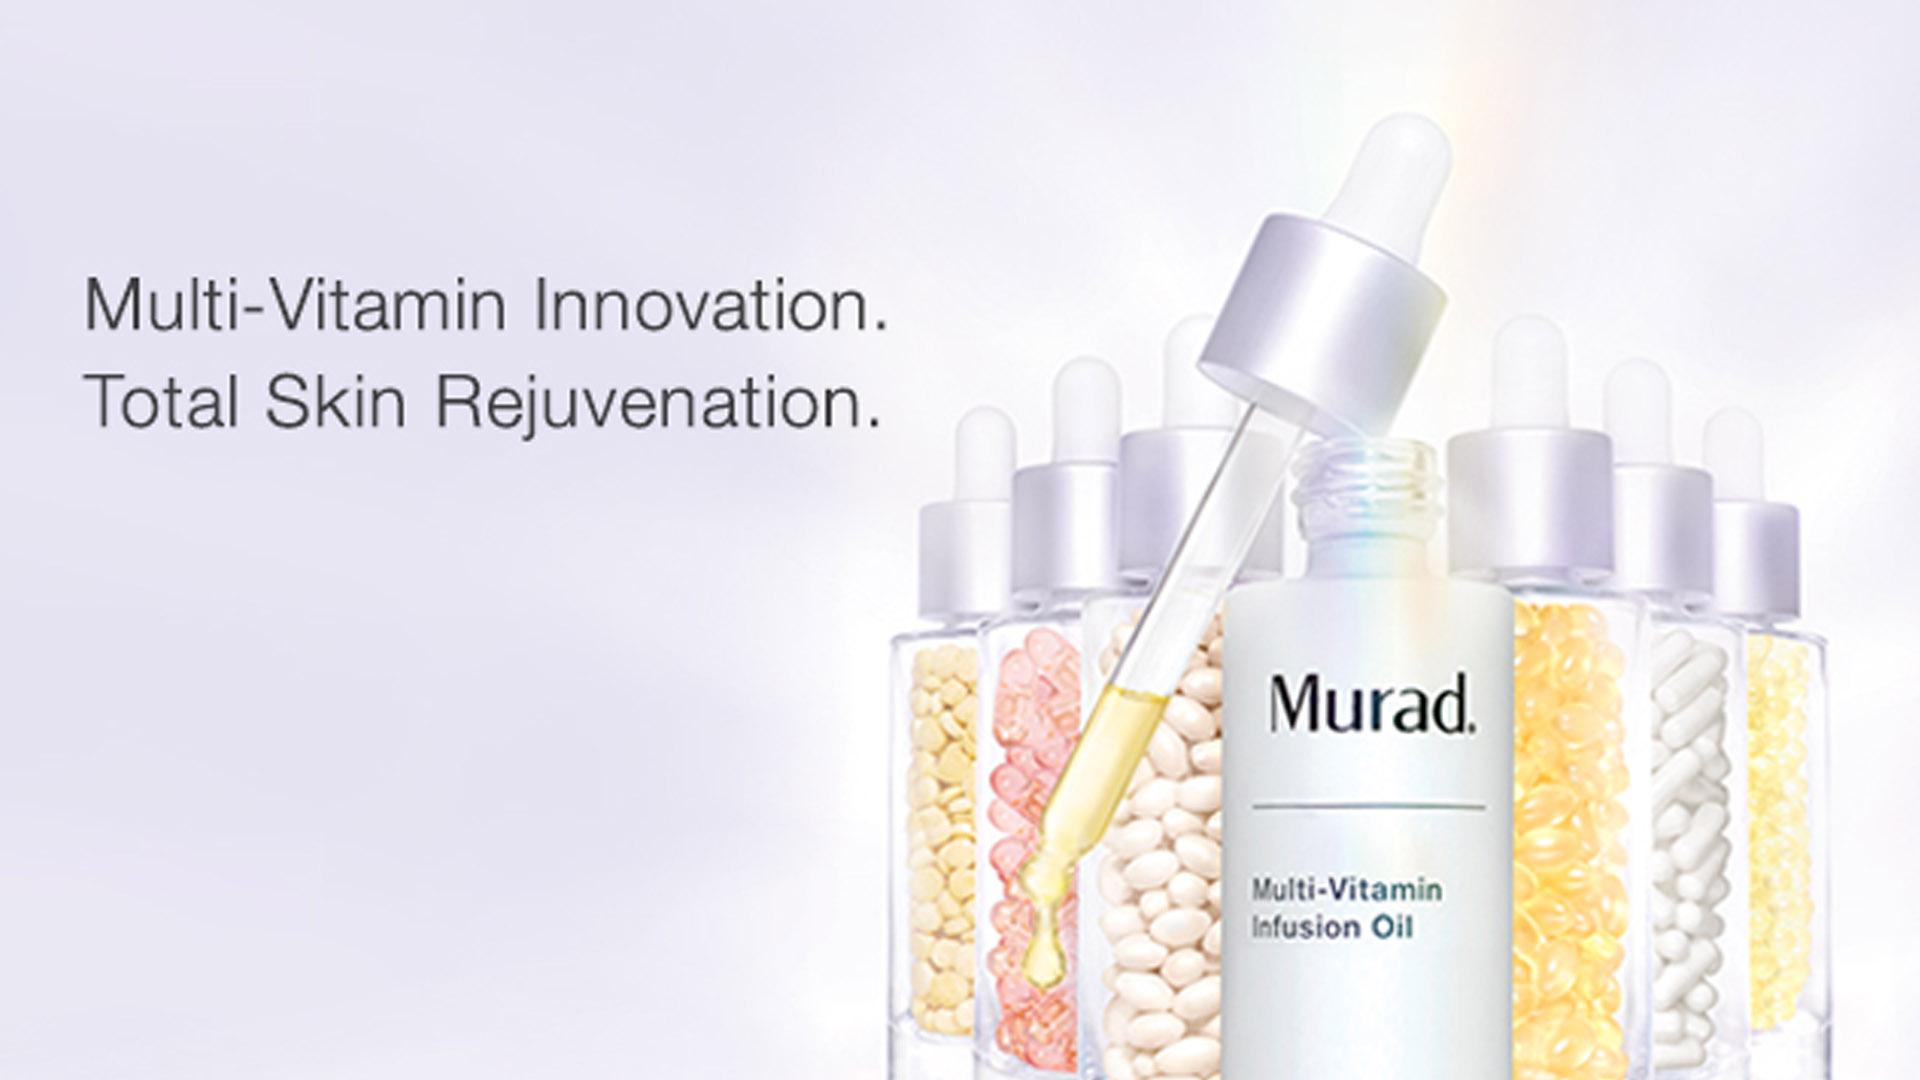 Murad Skin Care Products Through Lemoney